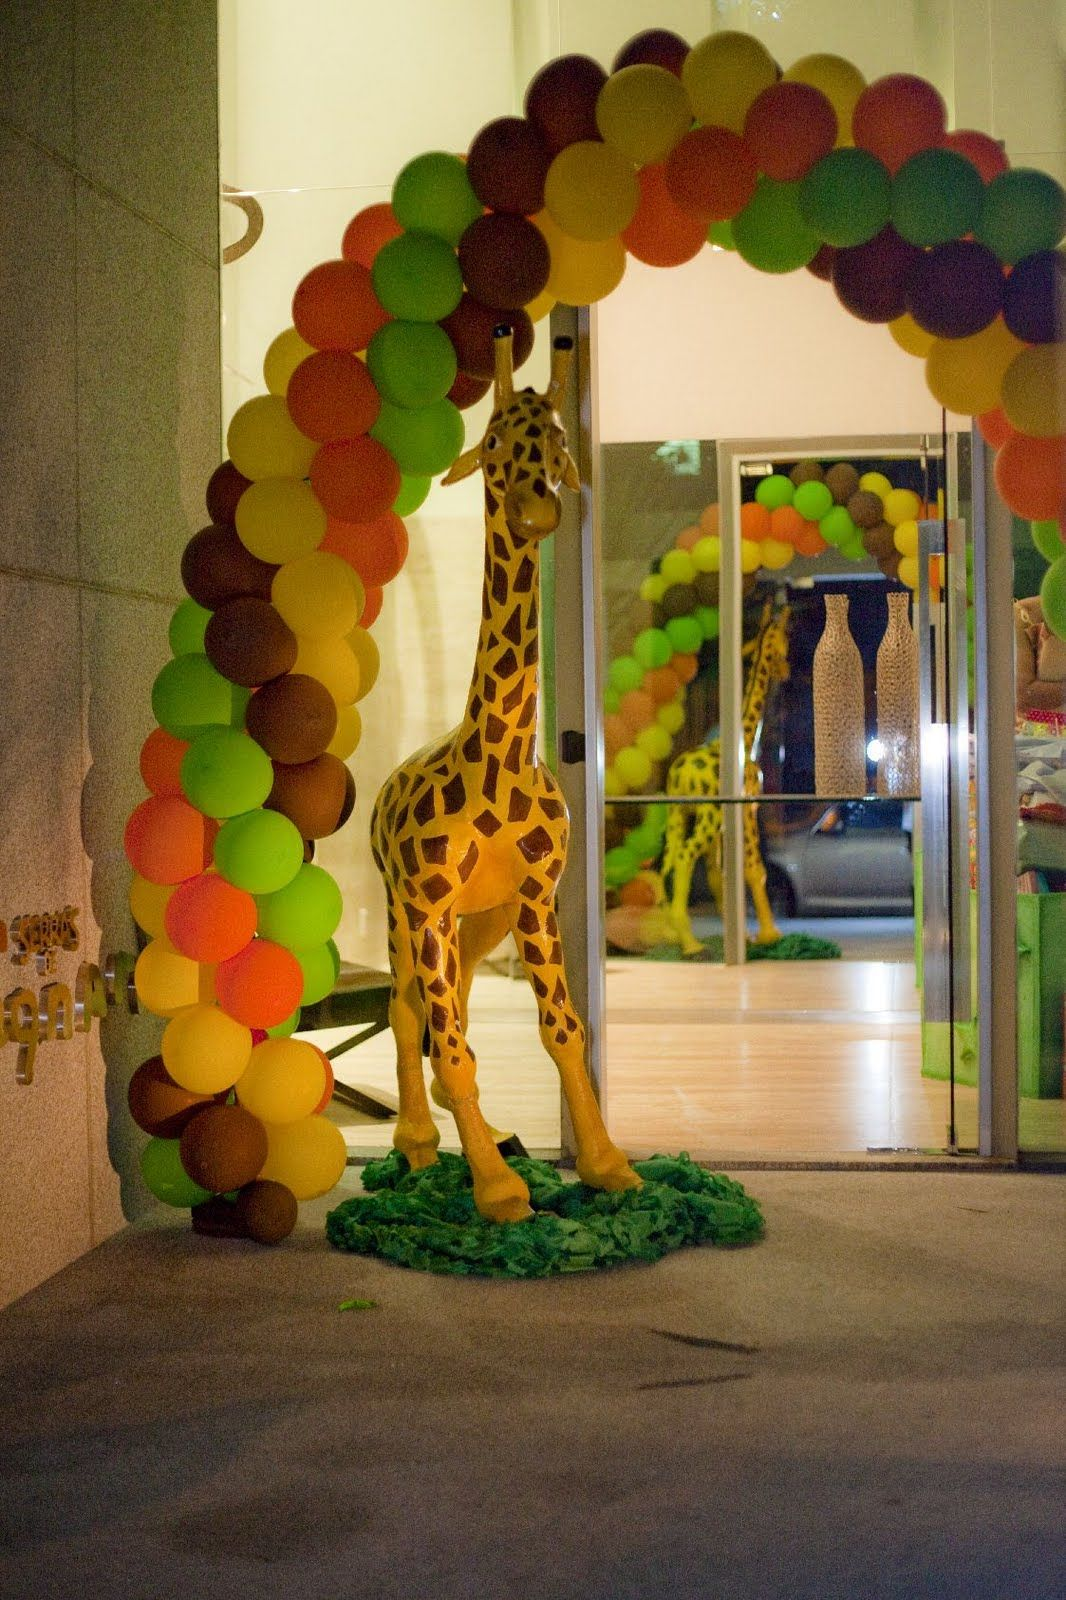 cus jungle pin of decor king the party to we like birthday decorations